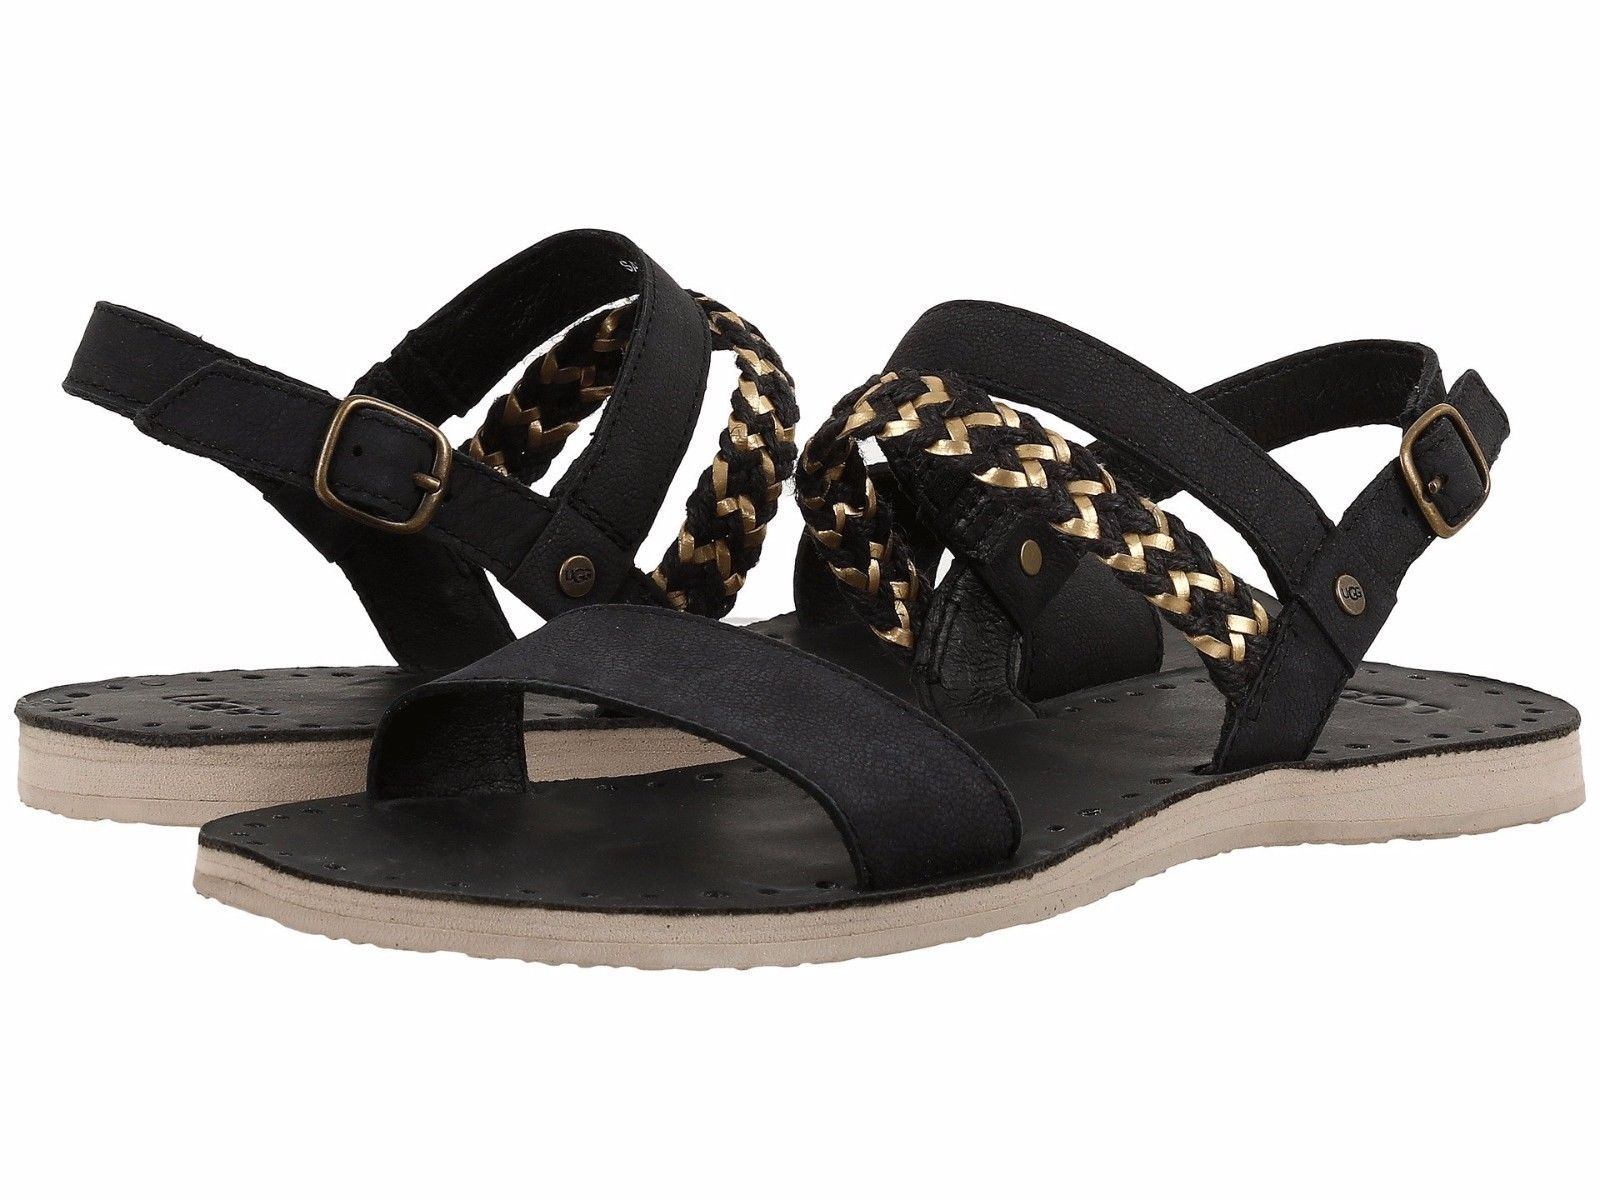 Women's UGG® Elin Leather Sandals, 1015035 Sizes 5-9 Black Authentic